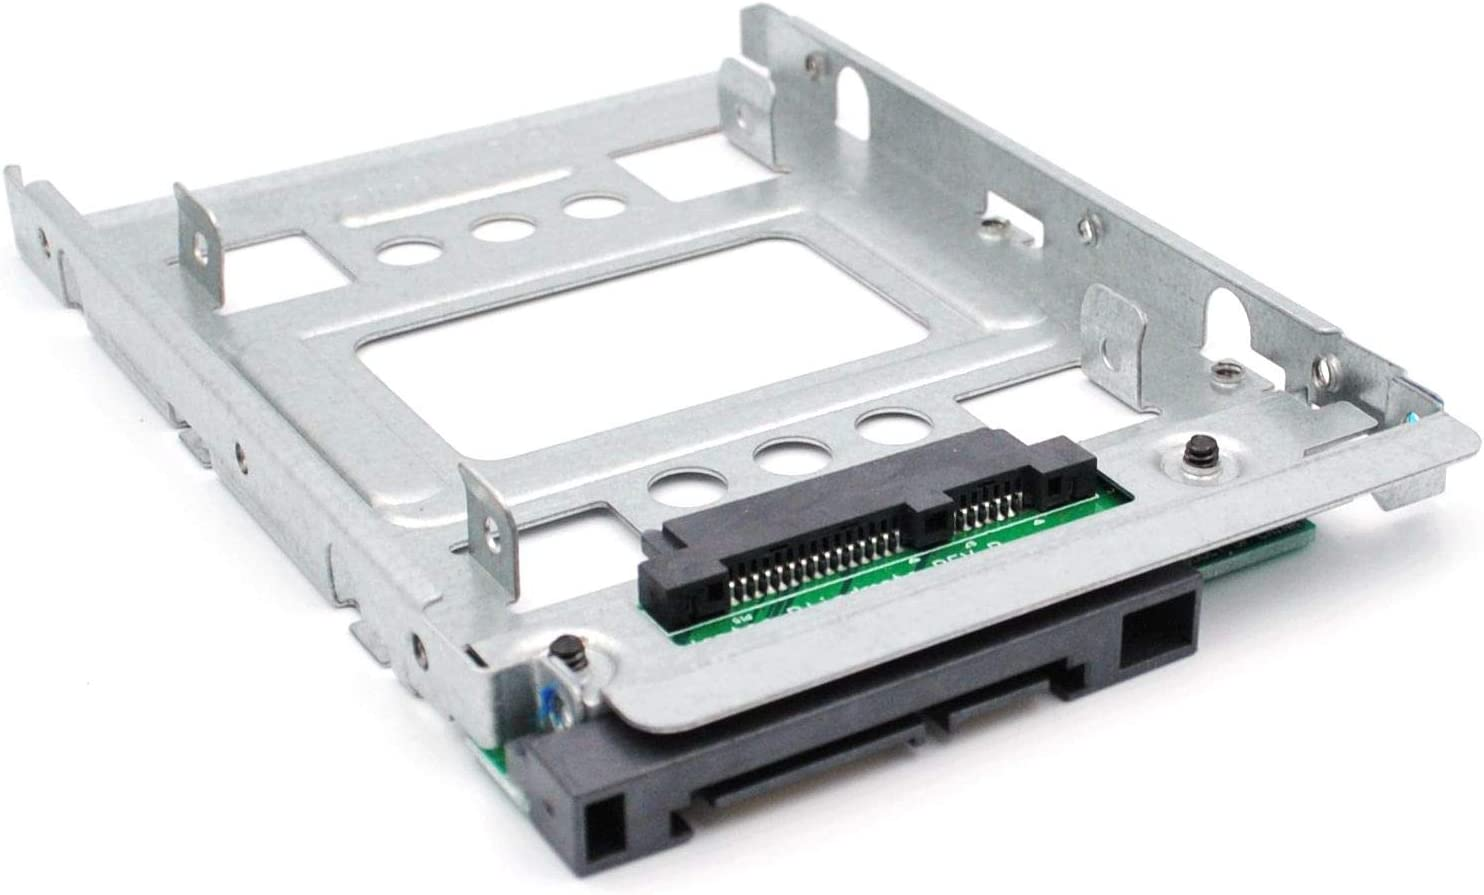 "BTHEBKRS 2.5"" SSD to 3.5"" SATA Hard Disk Drive HDD Adapter Caddy Tray Cage Hot Swap Plug Converter Bracket Compatible with All The 3.5"" SATA/SAS Drive Caddie Trays (654540-001)"